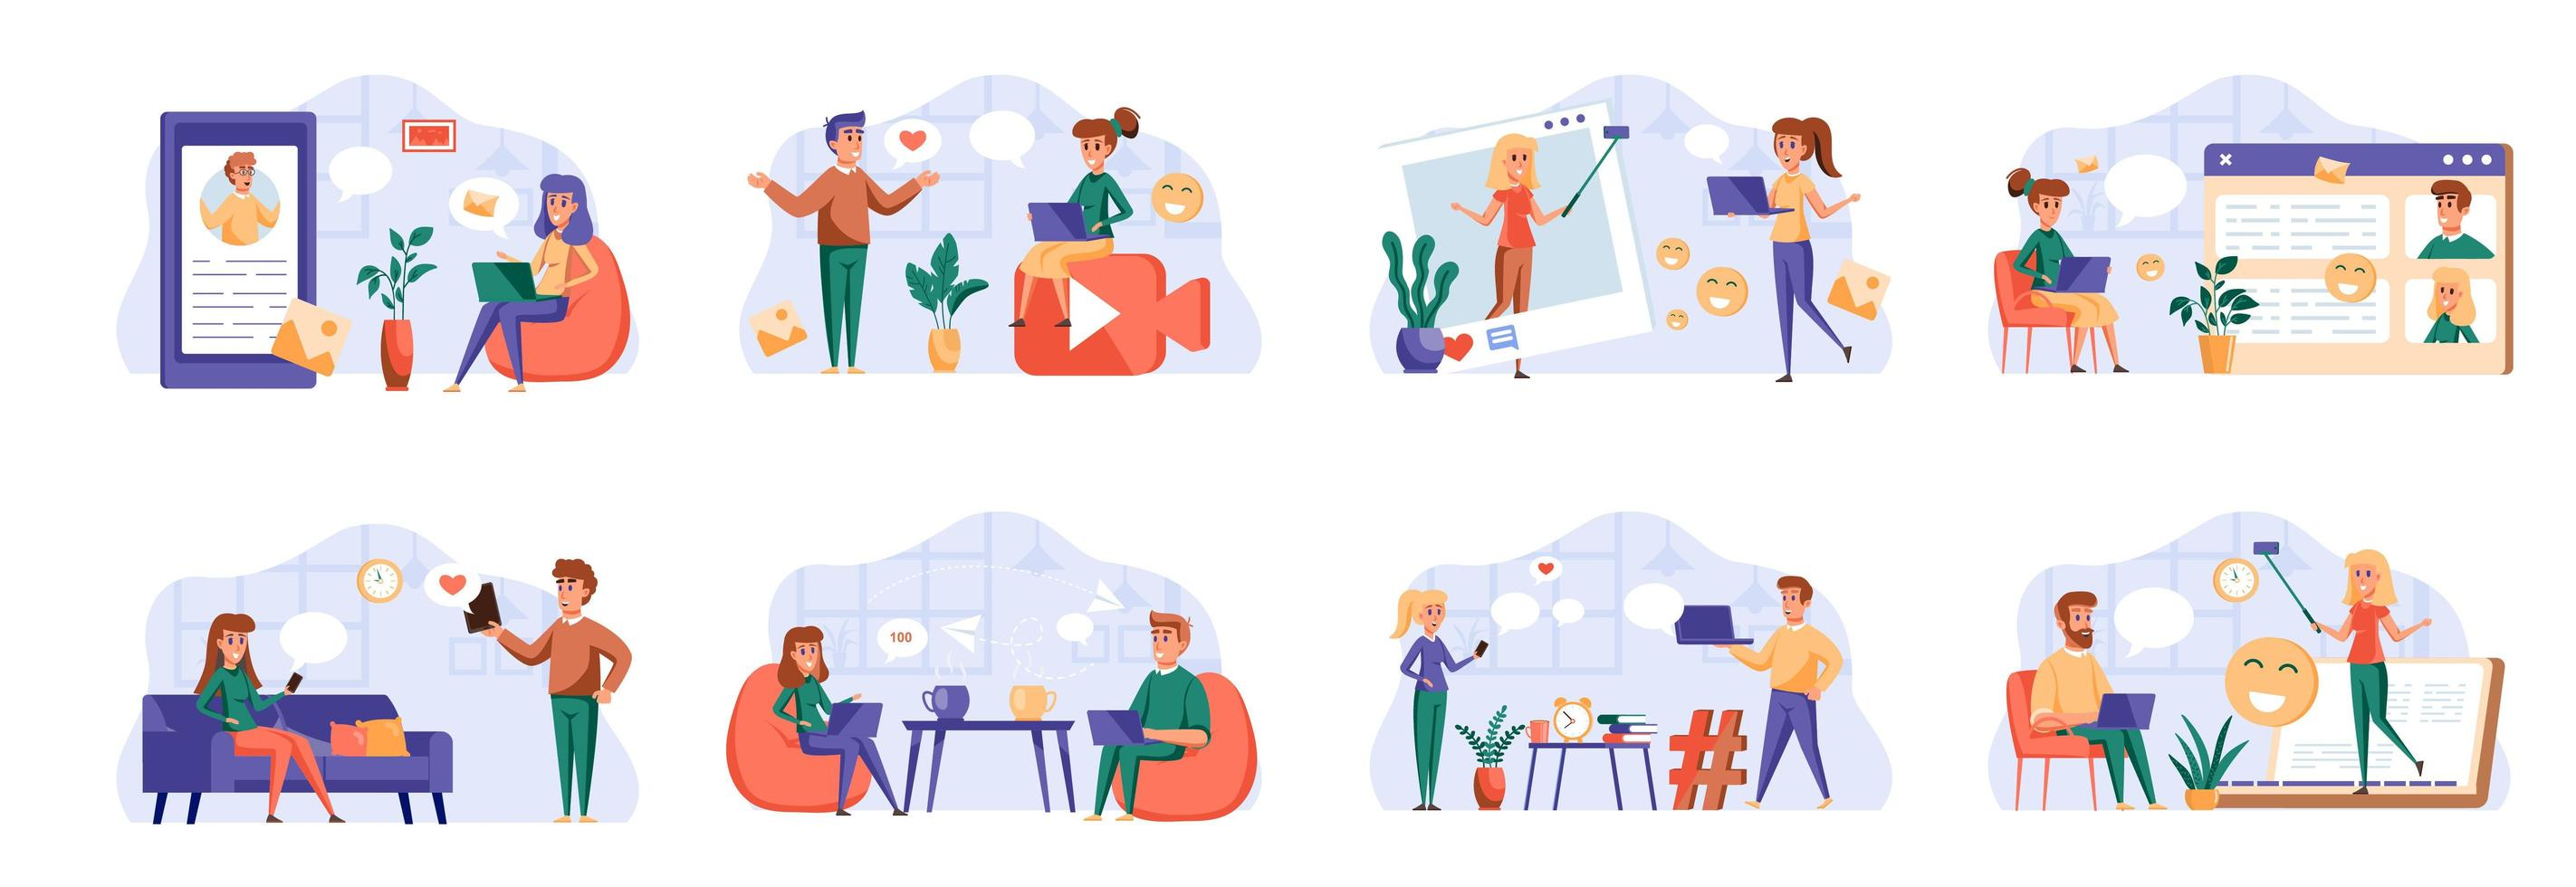 Social media bundle with people characters. vector